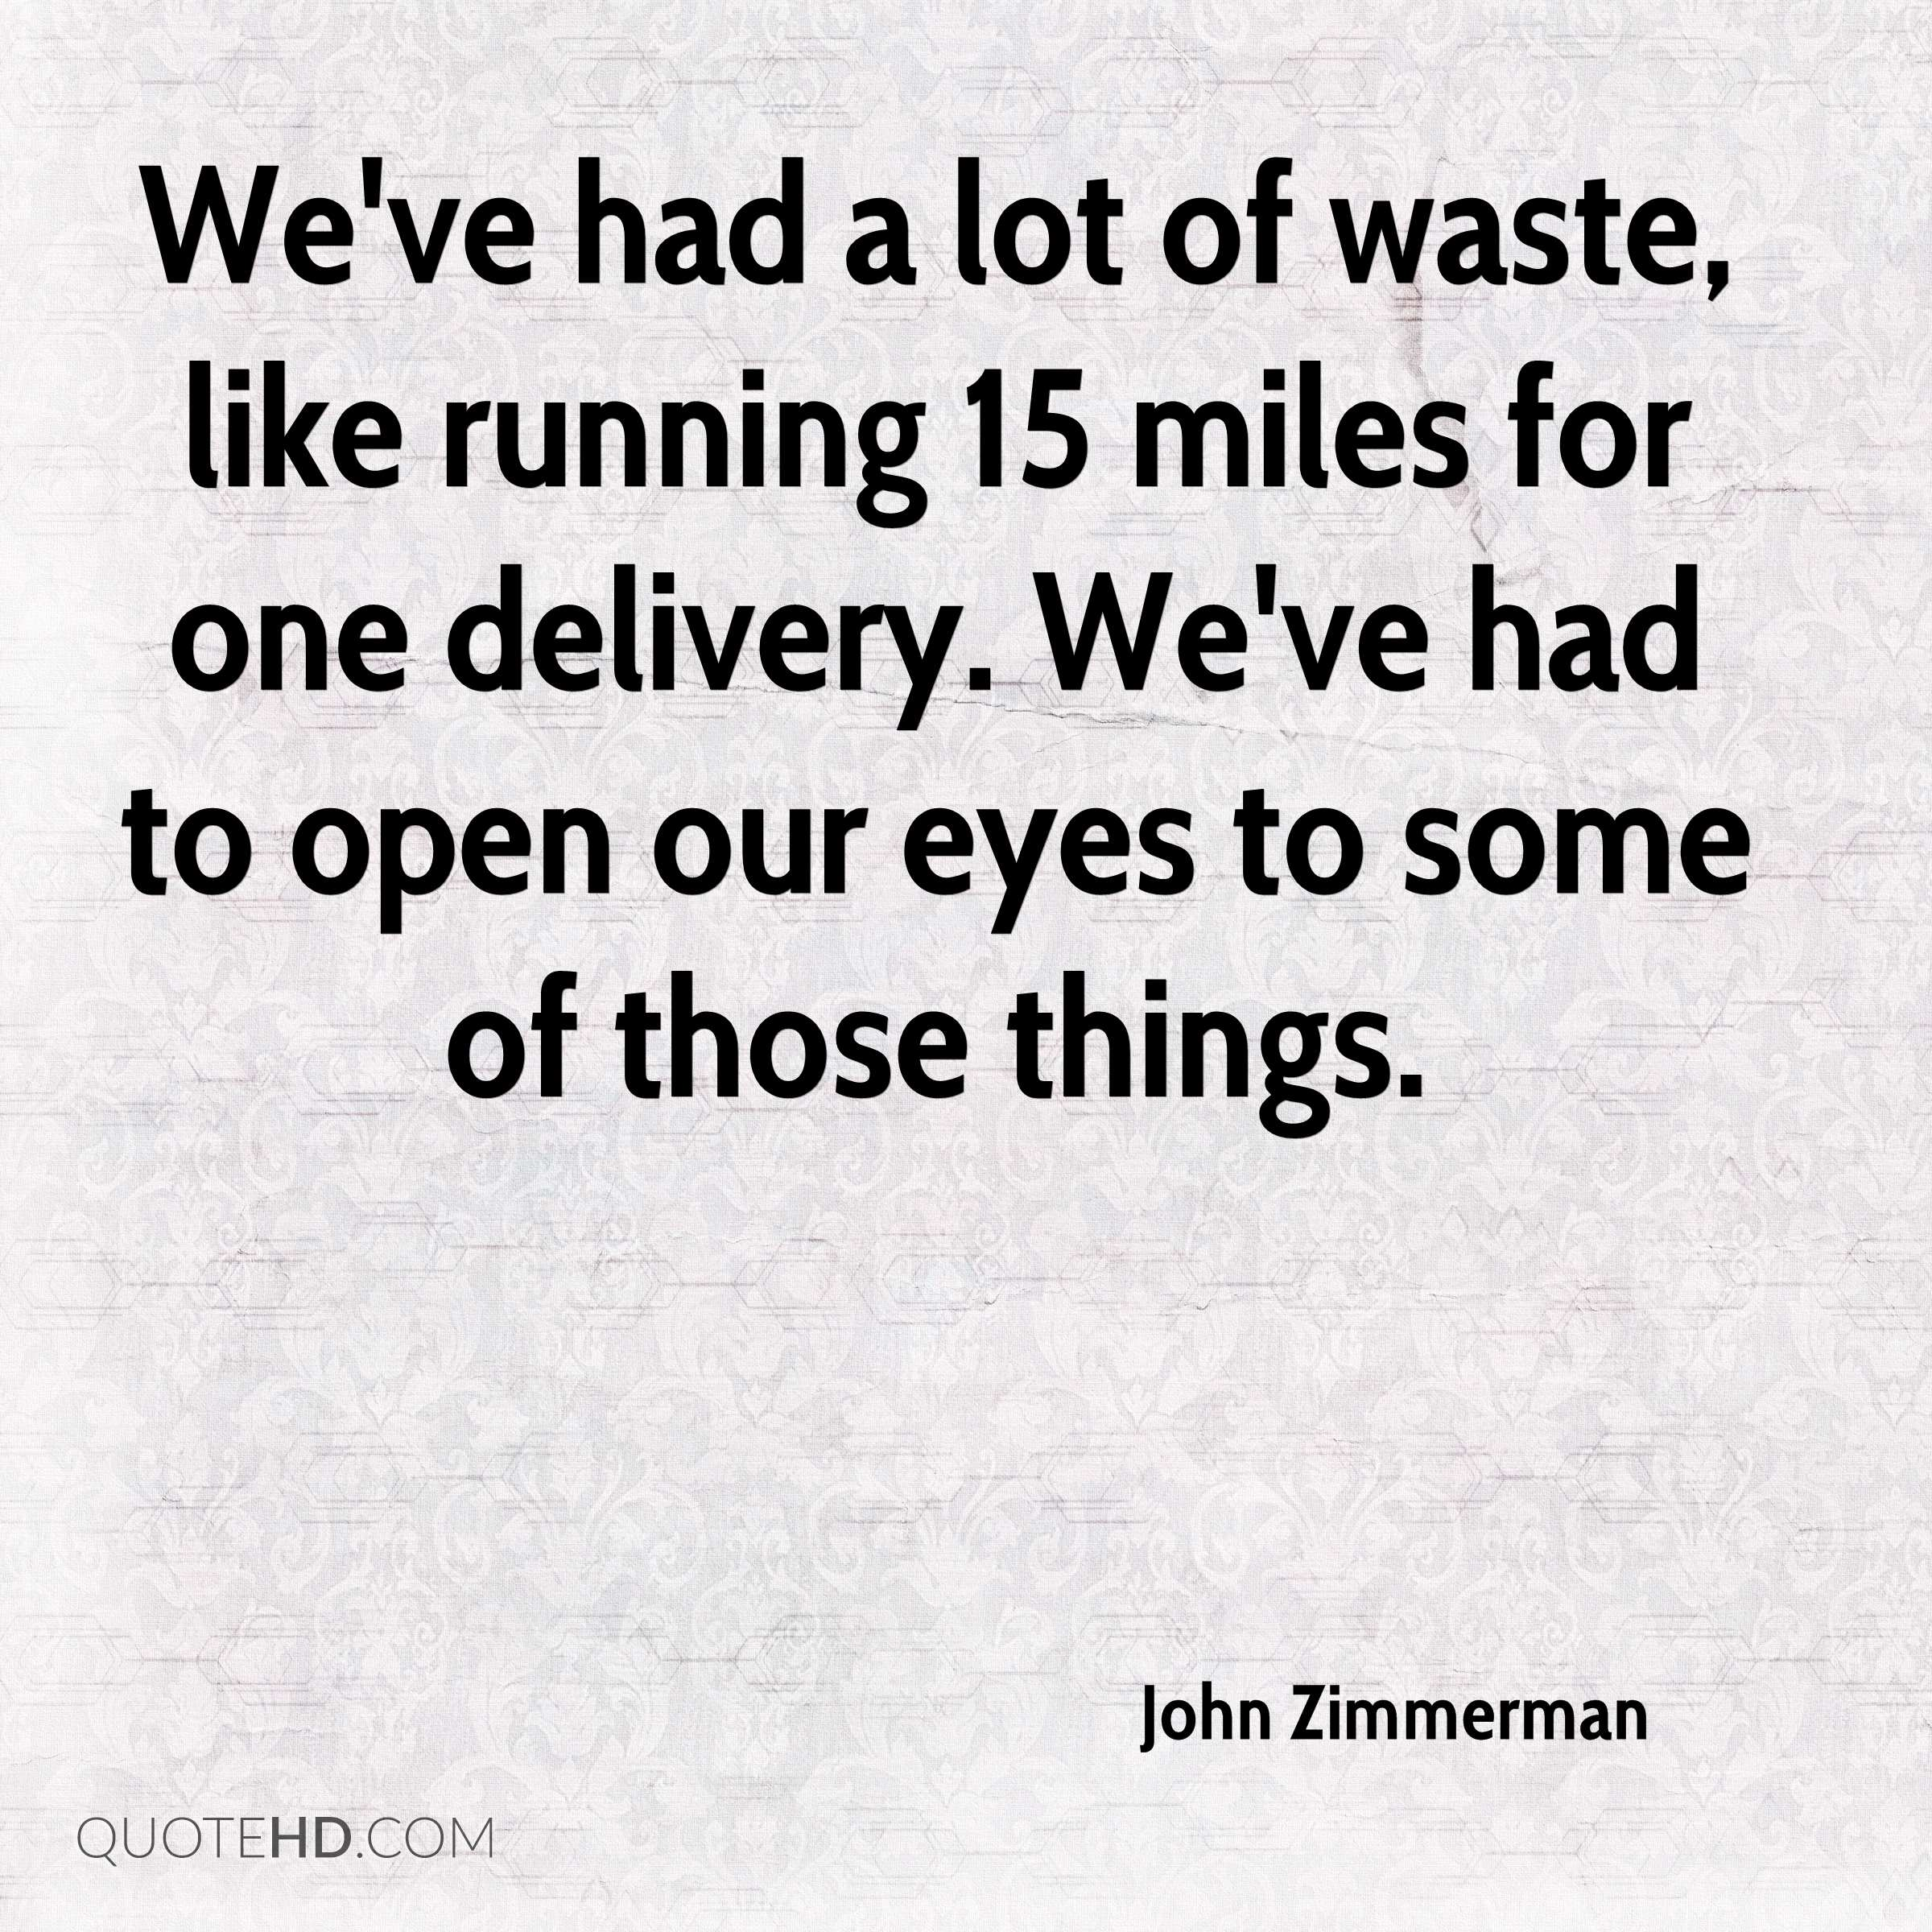 We've had a lot of waste, like running 15 miles for one delivery. We've had to open our eyes to some of those things.